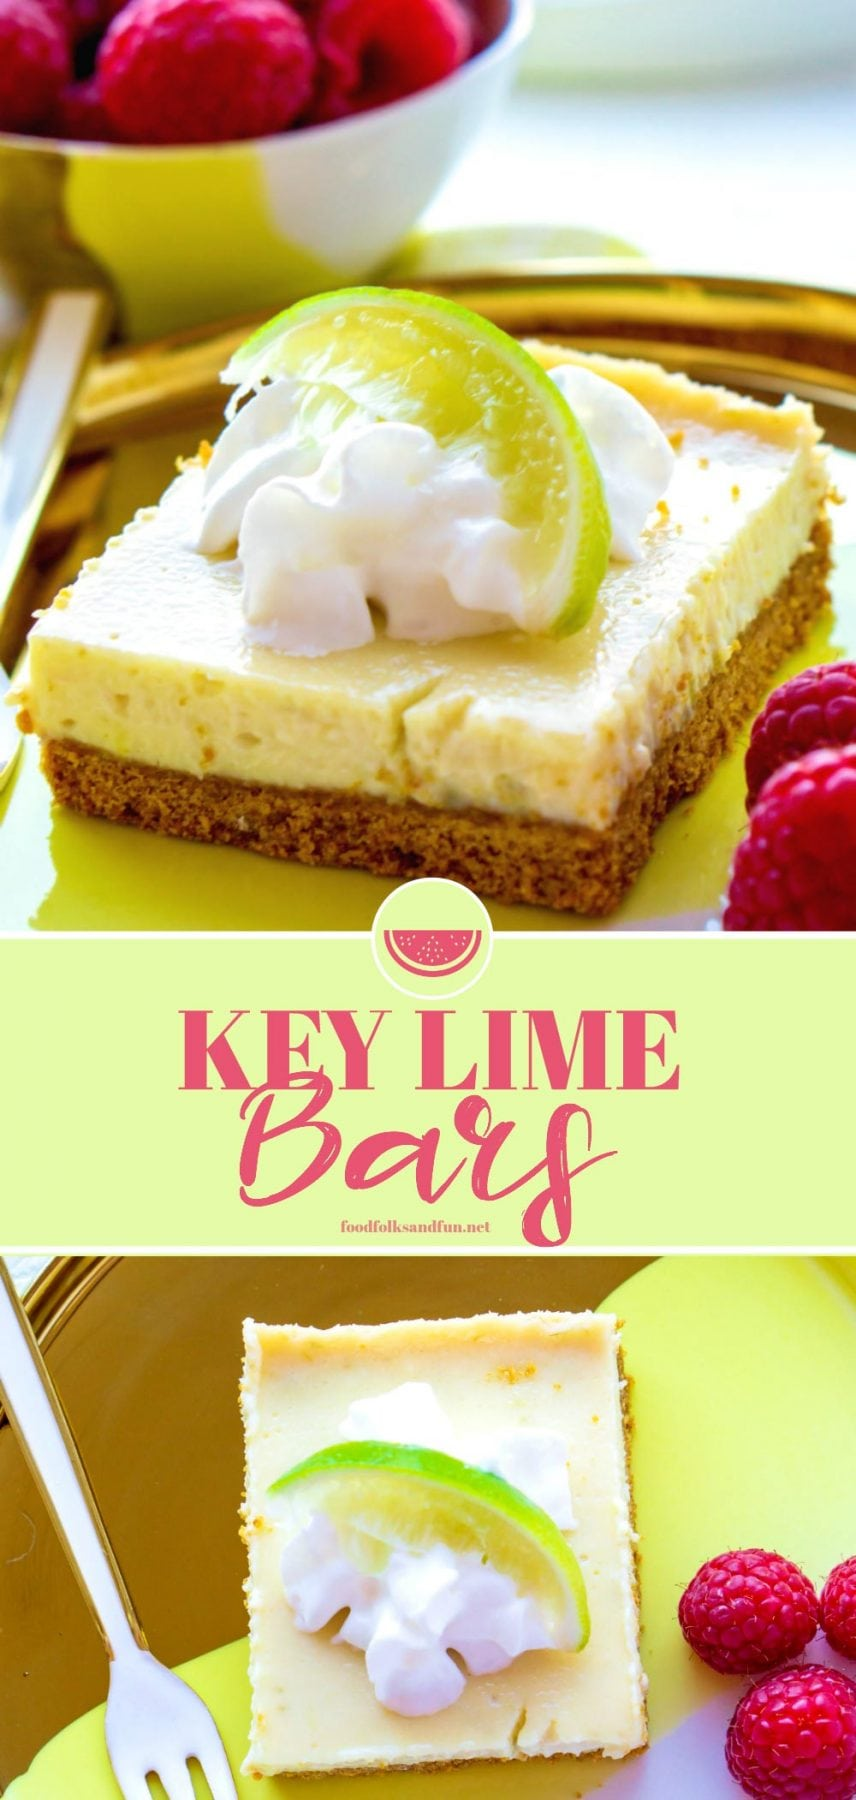 These Key Lime Bars are based on the summertime classic, Key Lime Pie. They're creamy, zesty, so easy to make, and they strike the perfect balance between sweet and tart. via @foodfolksandfun